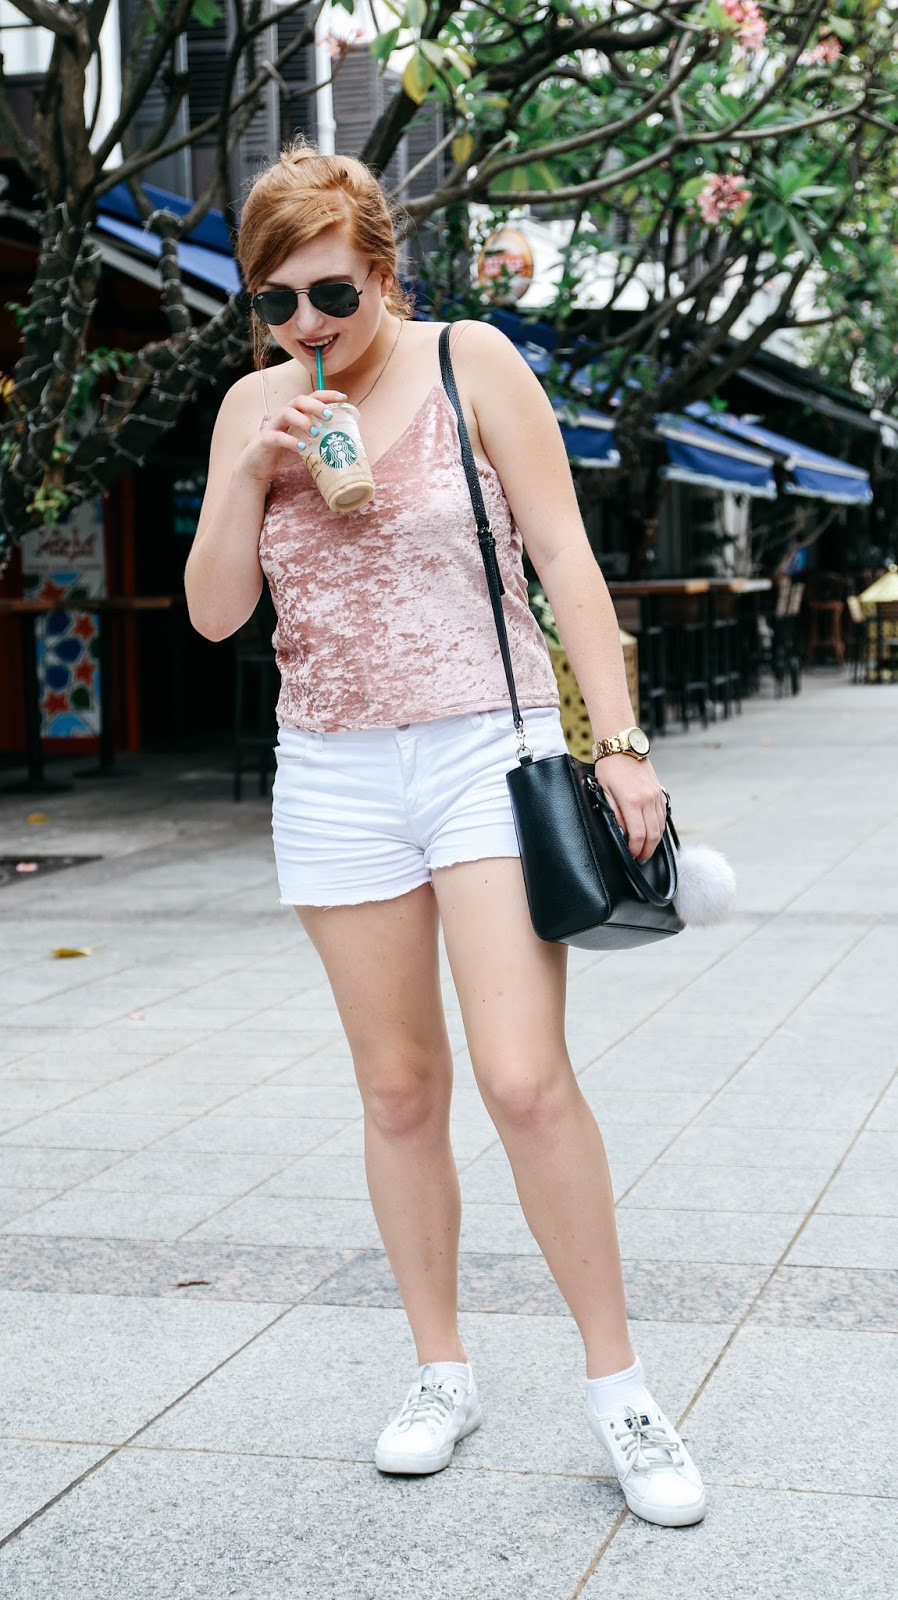 Blush Pink Velvet Top for Valentine's Day | GlobalFashionGal Blog by Brianna Degaston